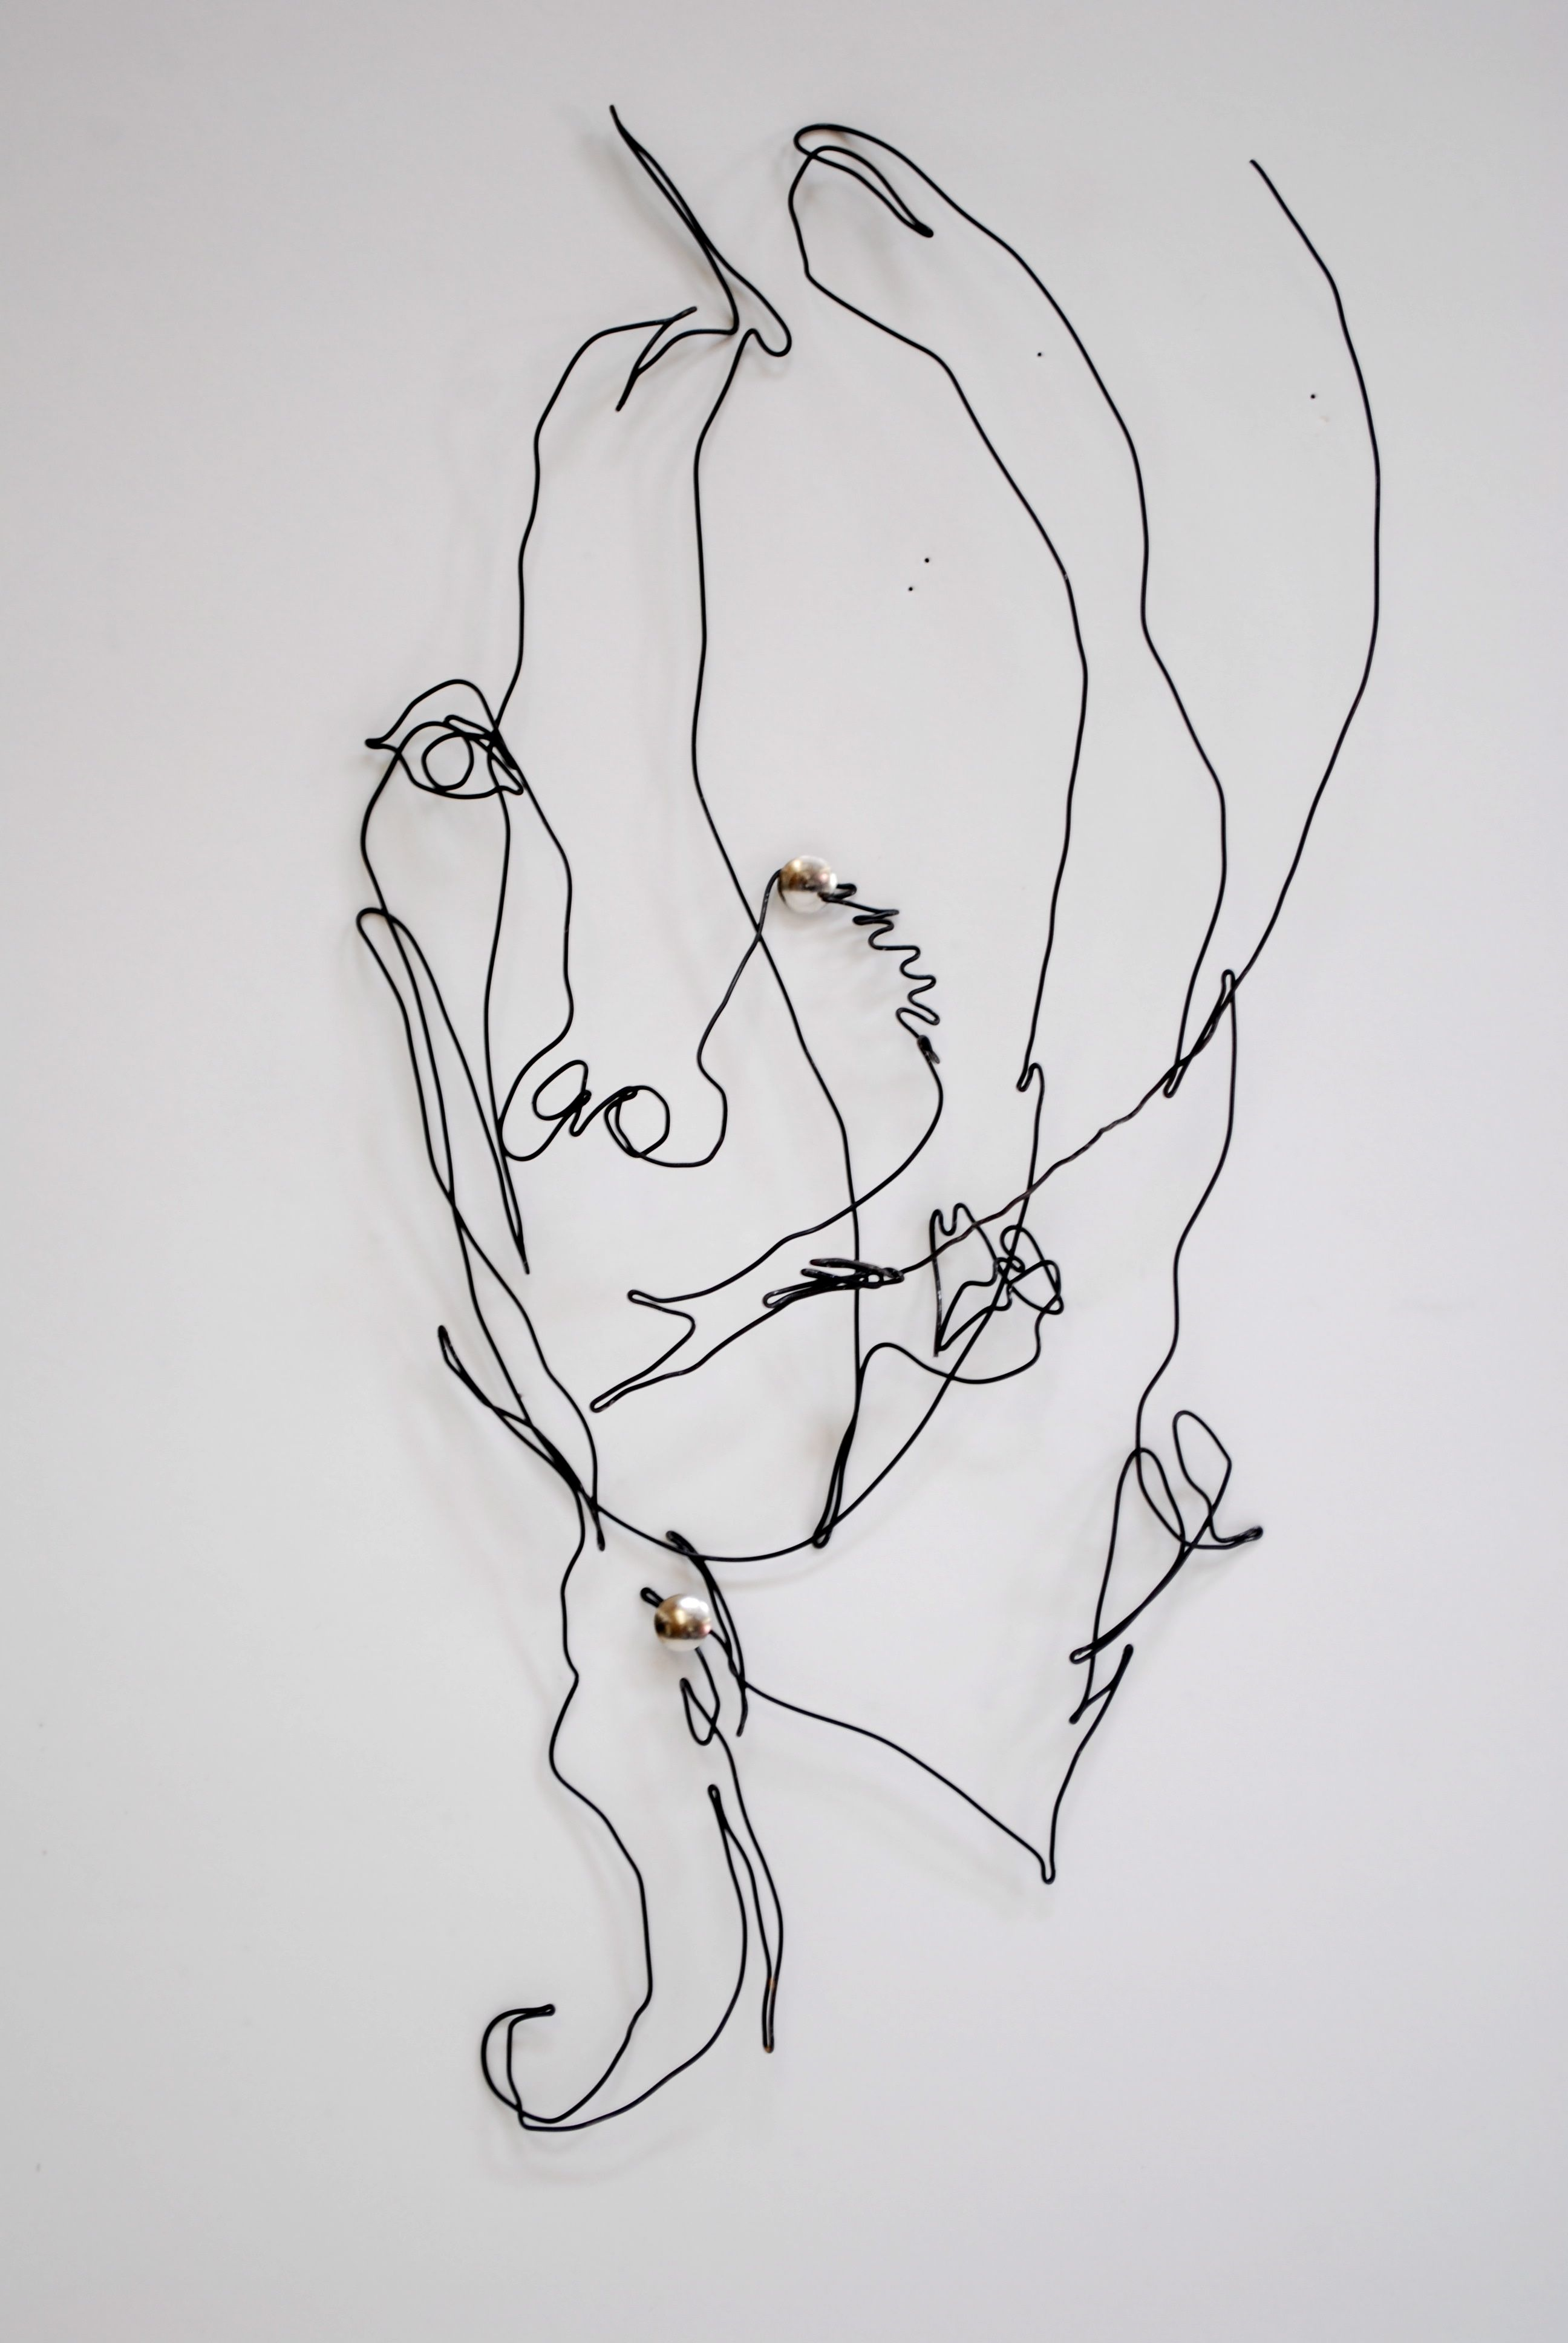 Wire Self Portrait Based Off Contour Drawing Continuous